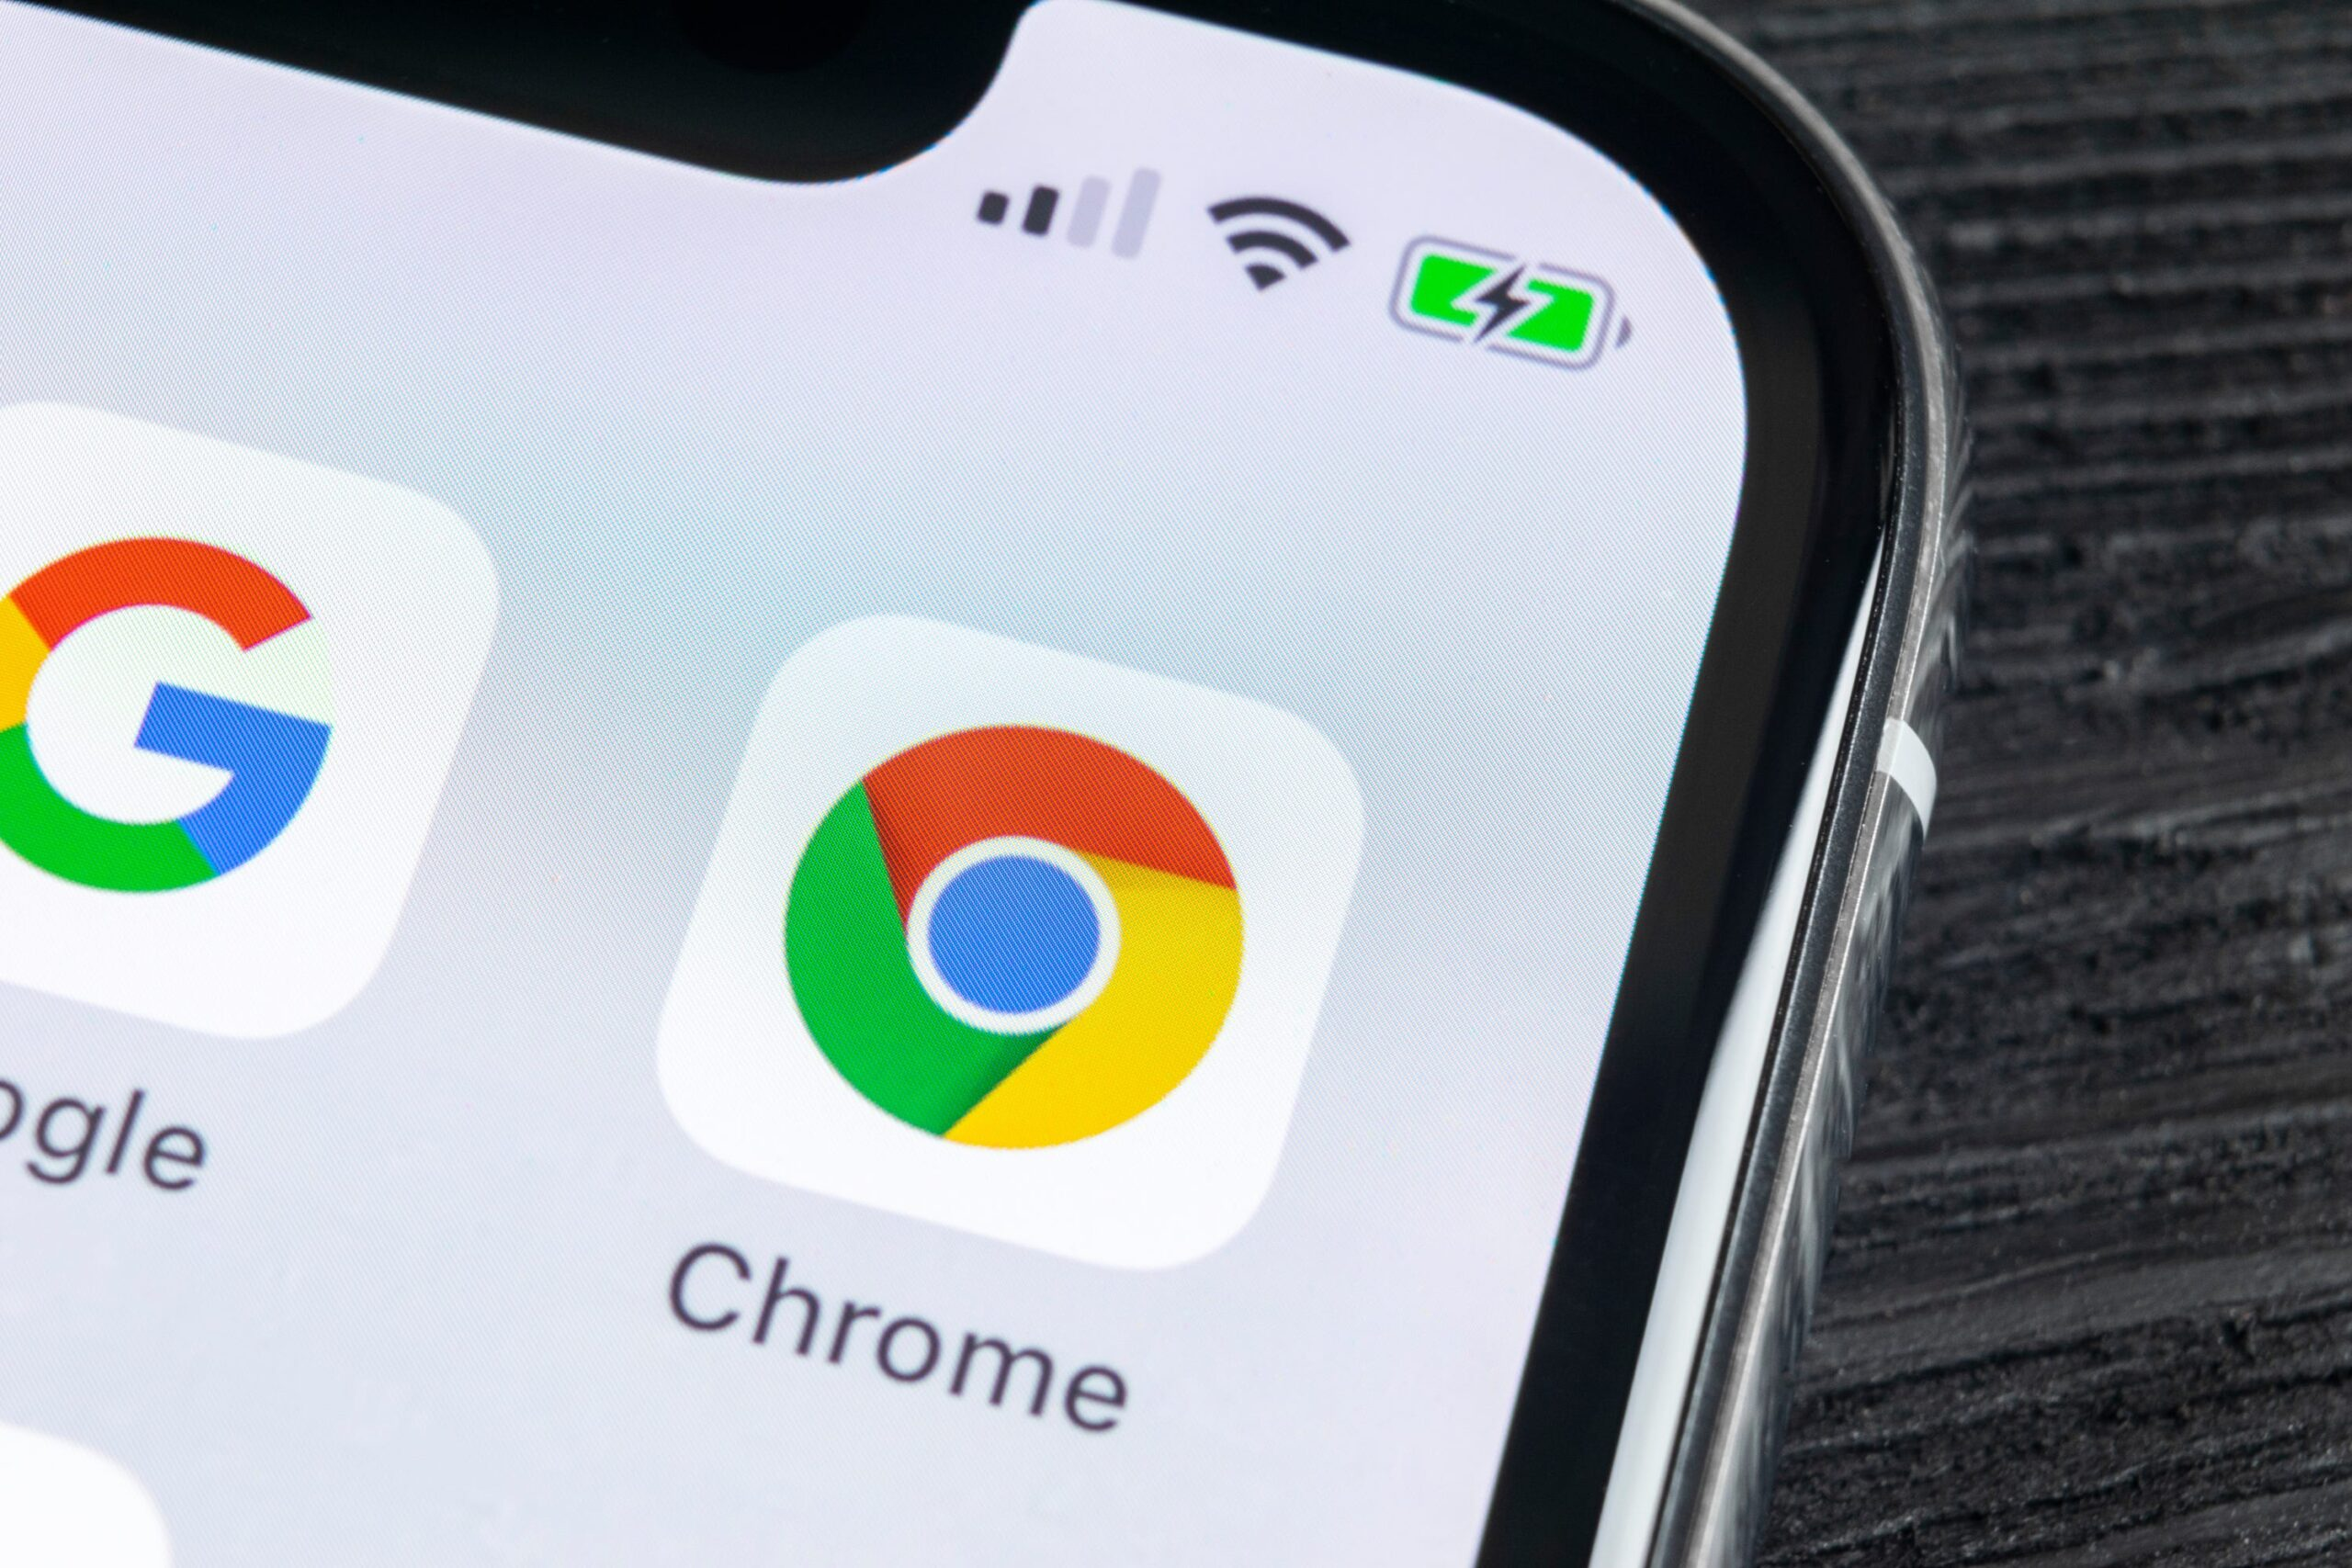 How to use Chrome as a file explorer on Android?